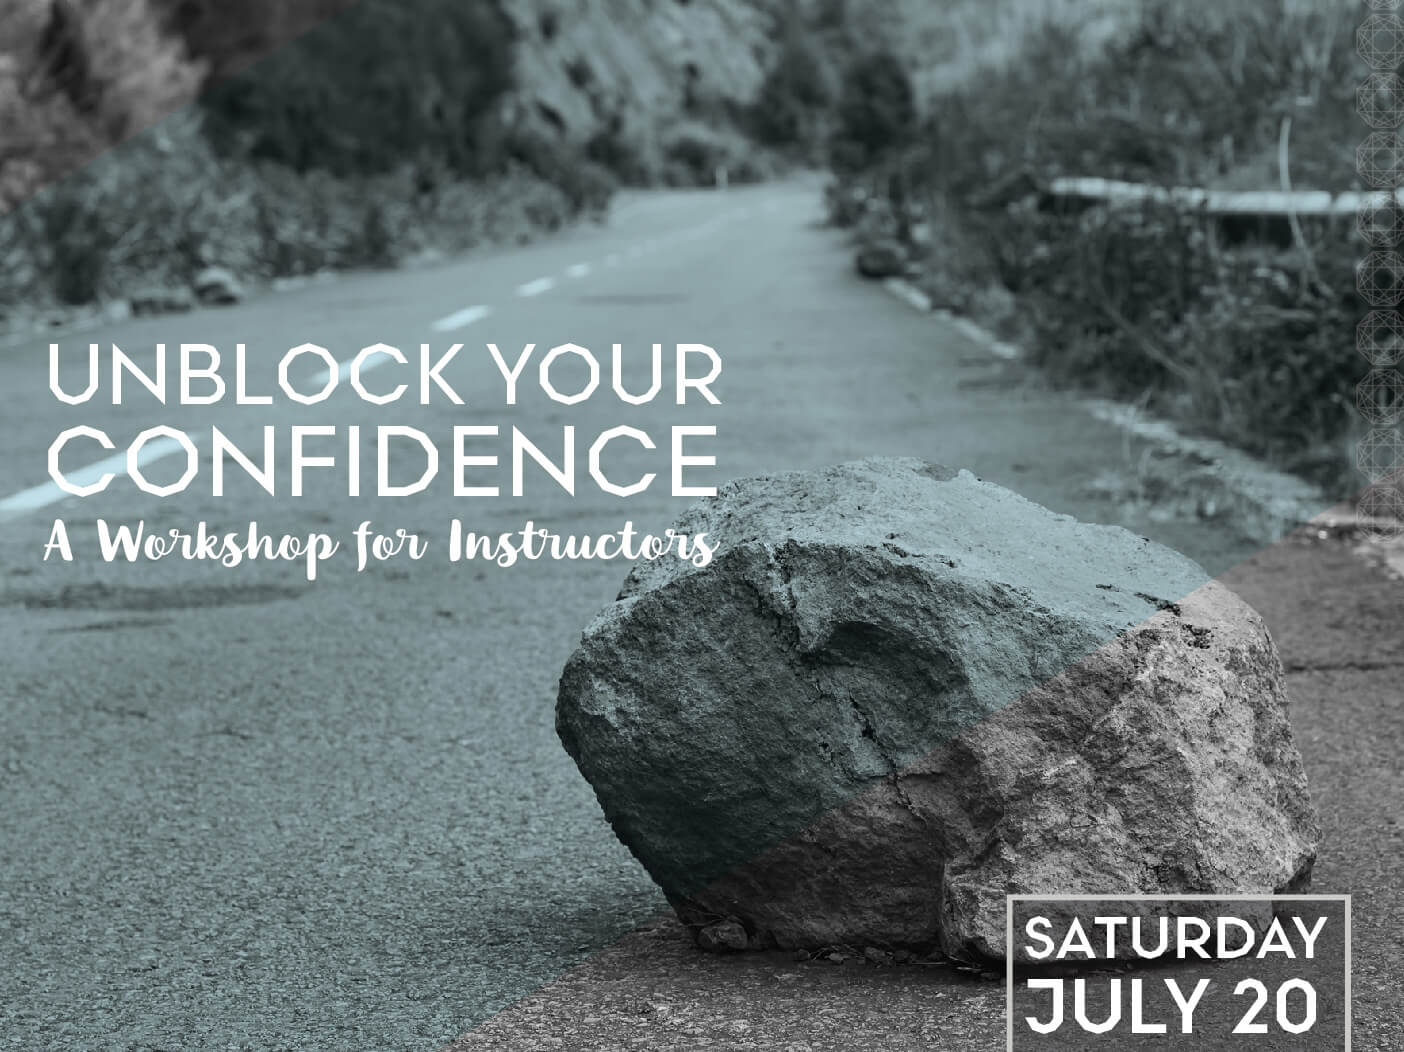 Unblock Your Confidence: A Workshop for Instructors